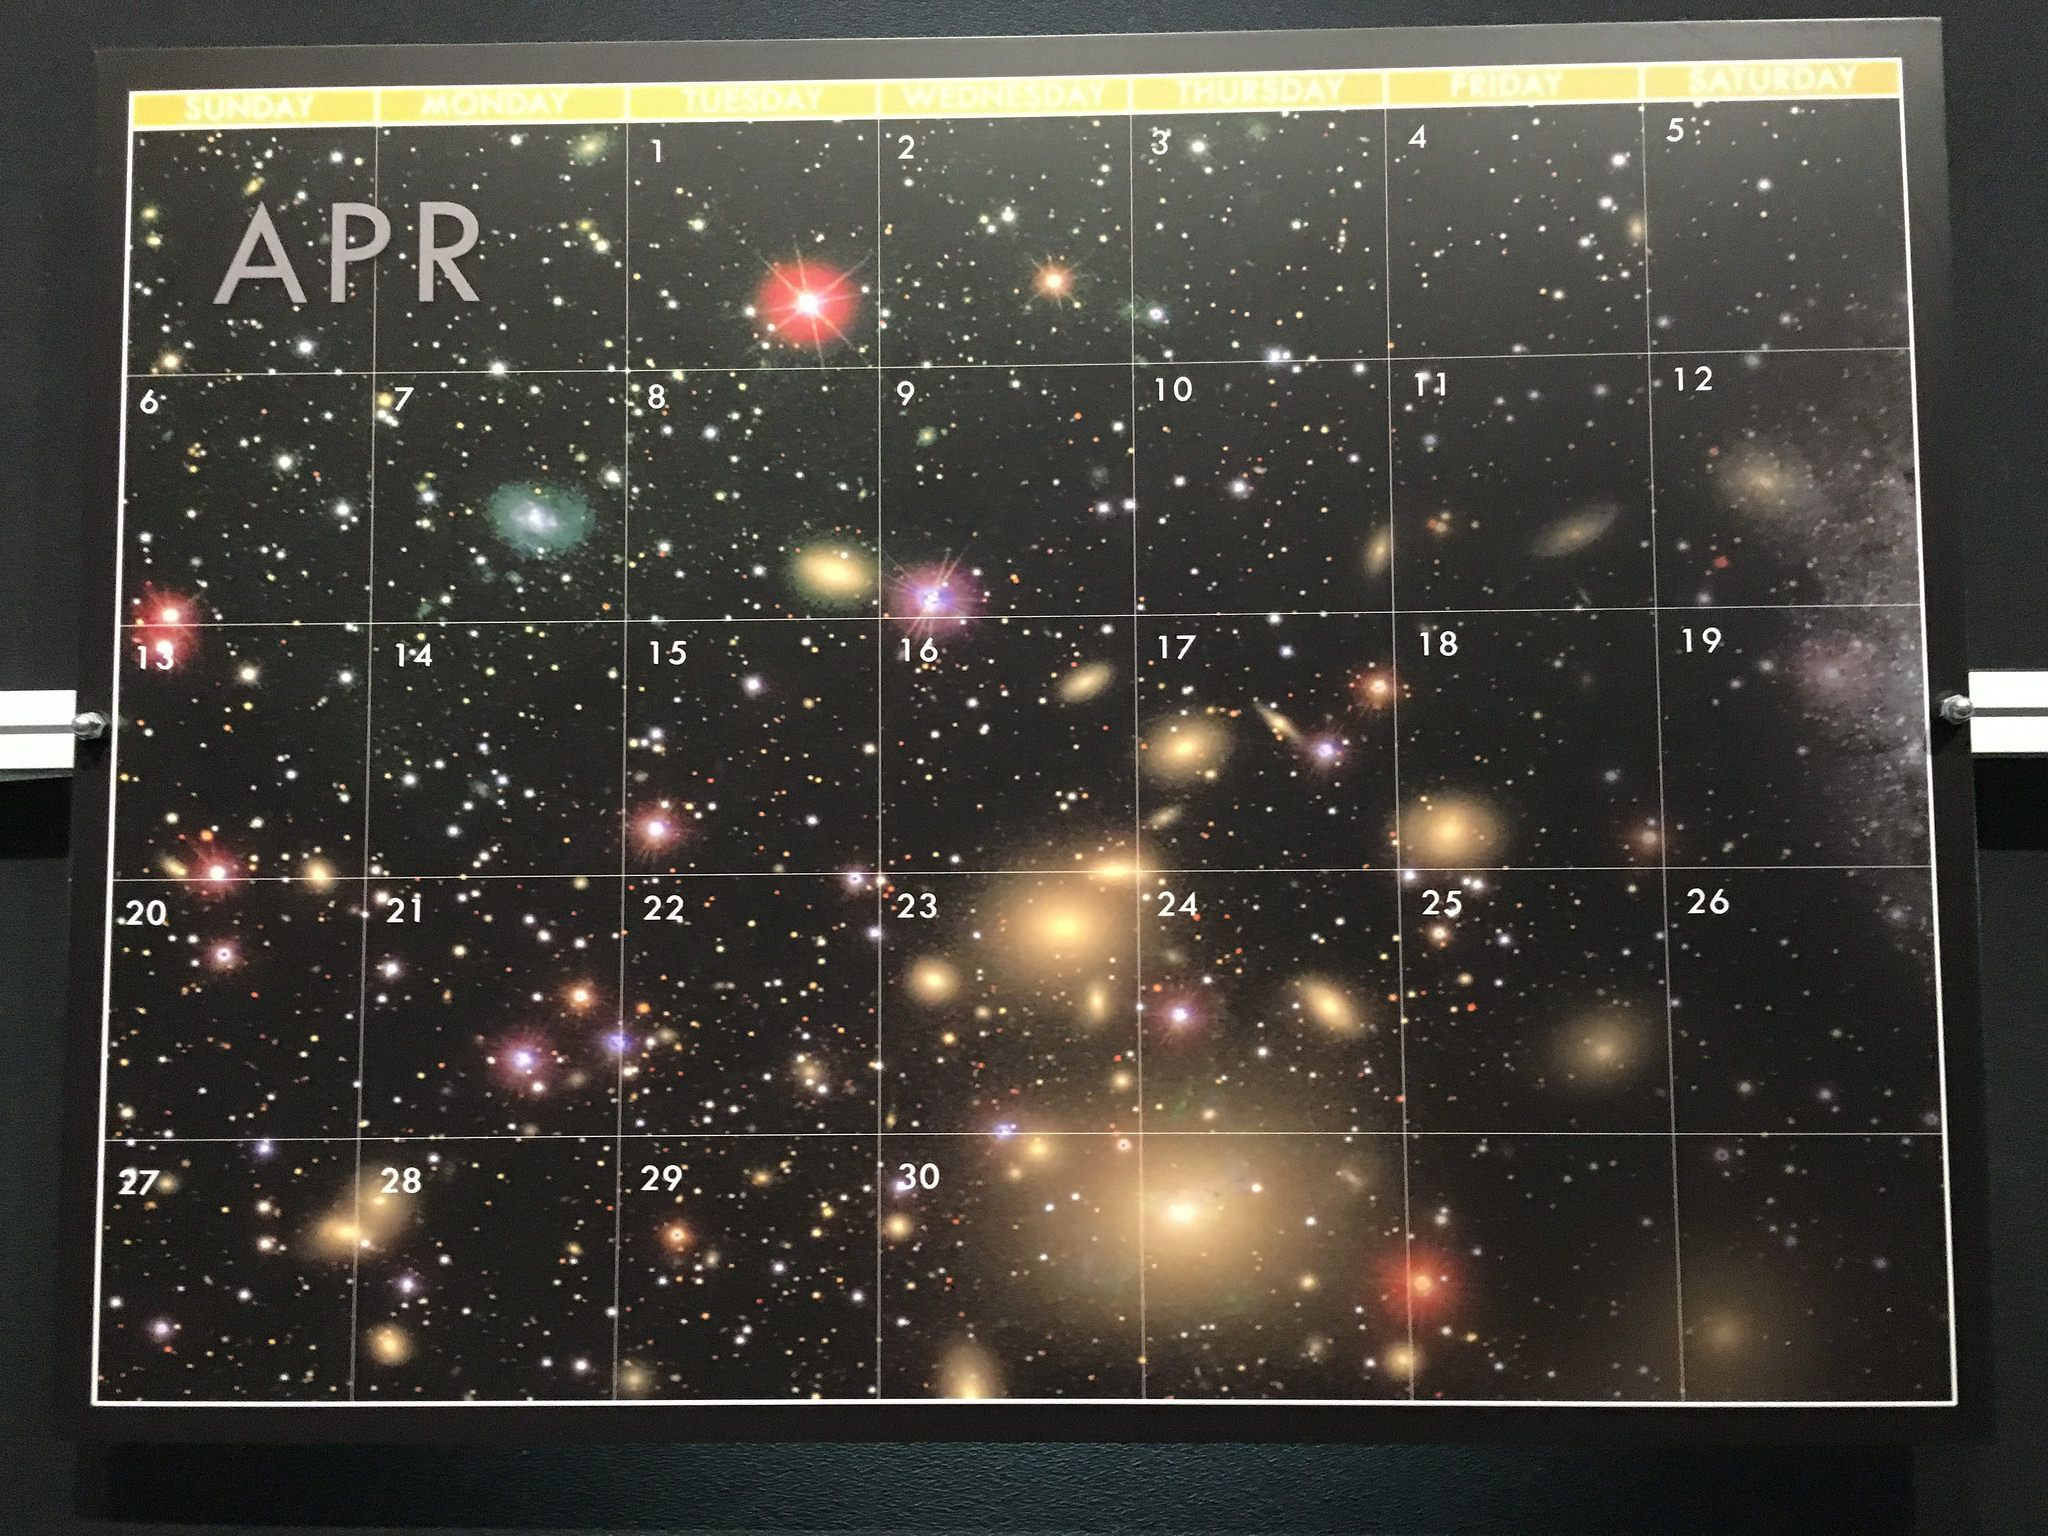 Cosmic Calendar.April Calendars My How Time Does Fly Cosmic Calendar